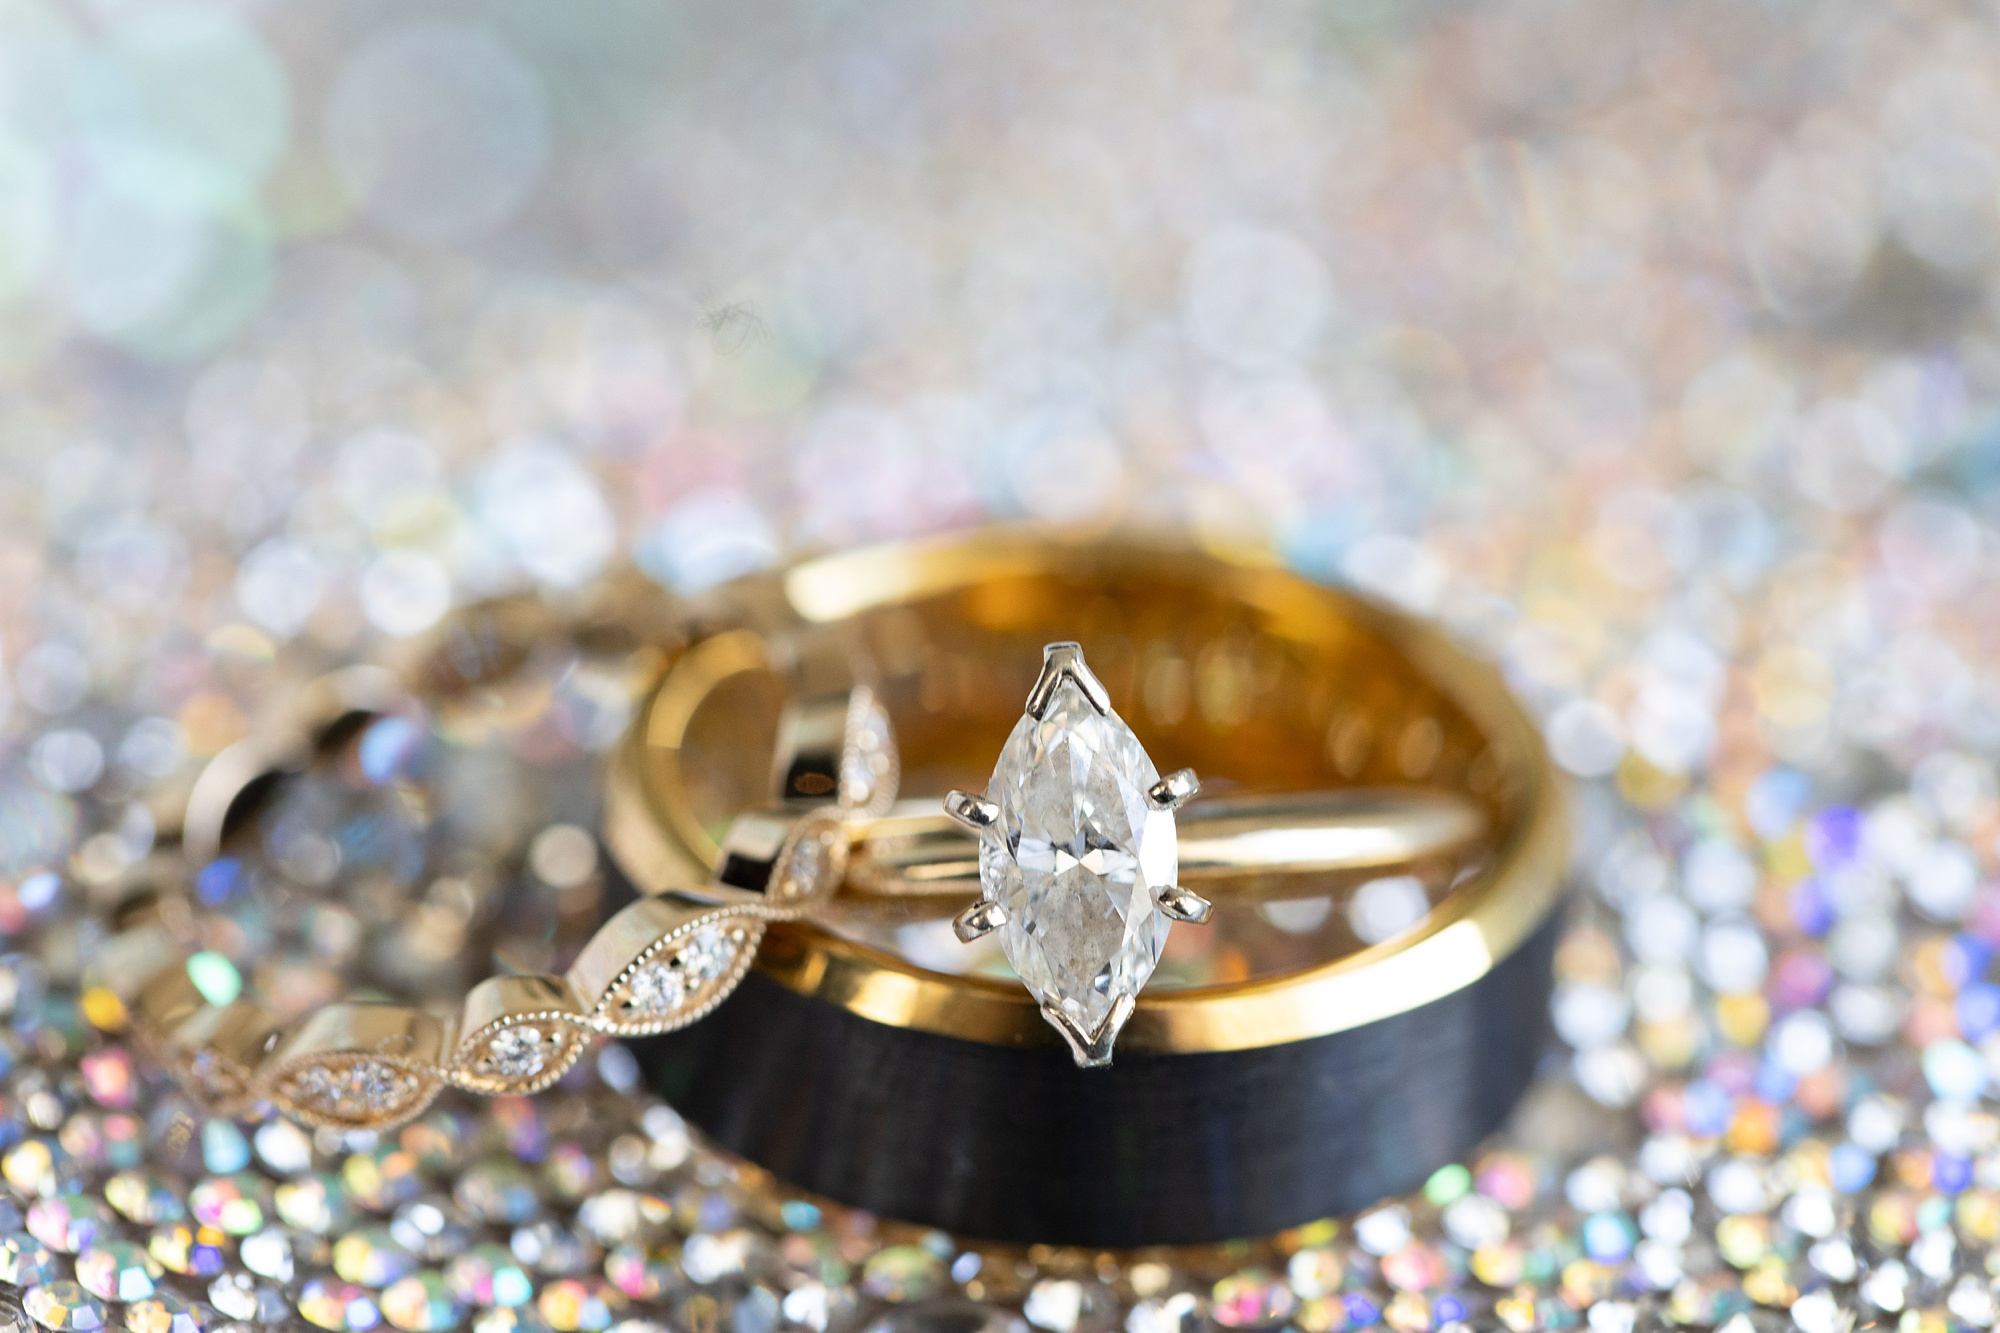 wedding bands and engagement ring sit on sparkly boots